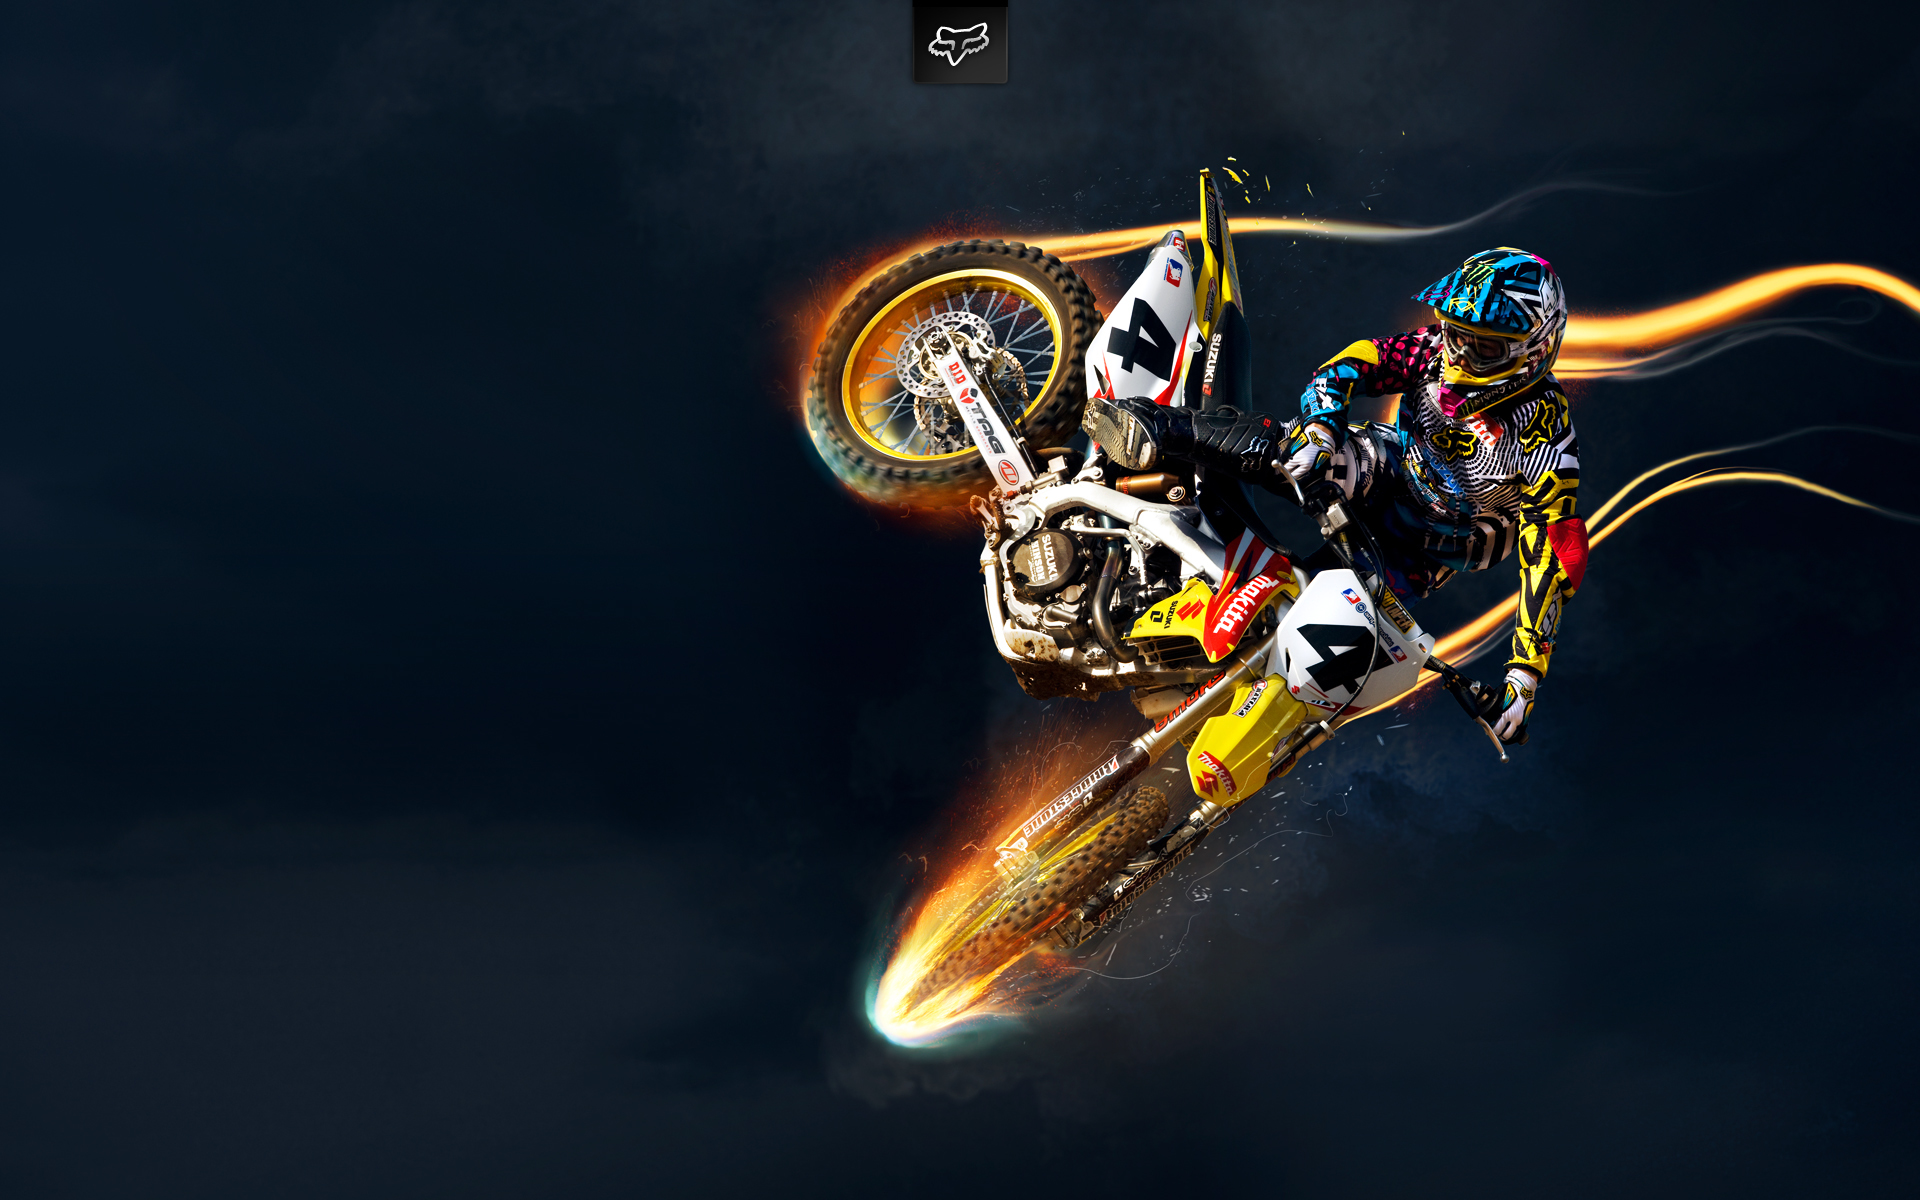 Suzuki Bike Stunts Hd Bikes 4k Wallpapers Images